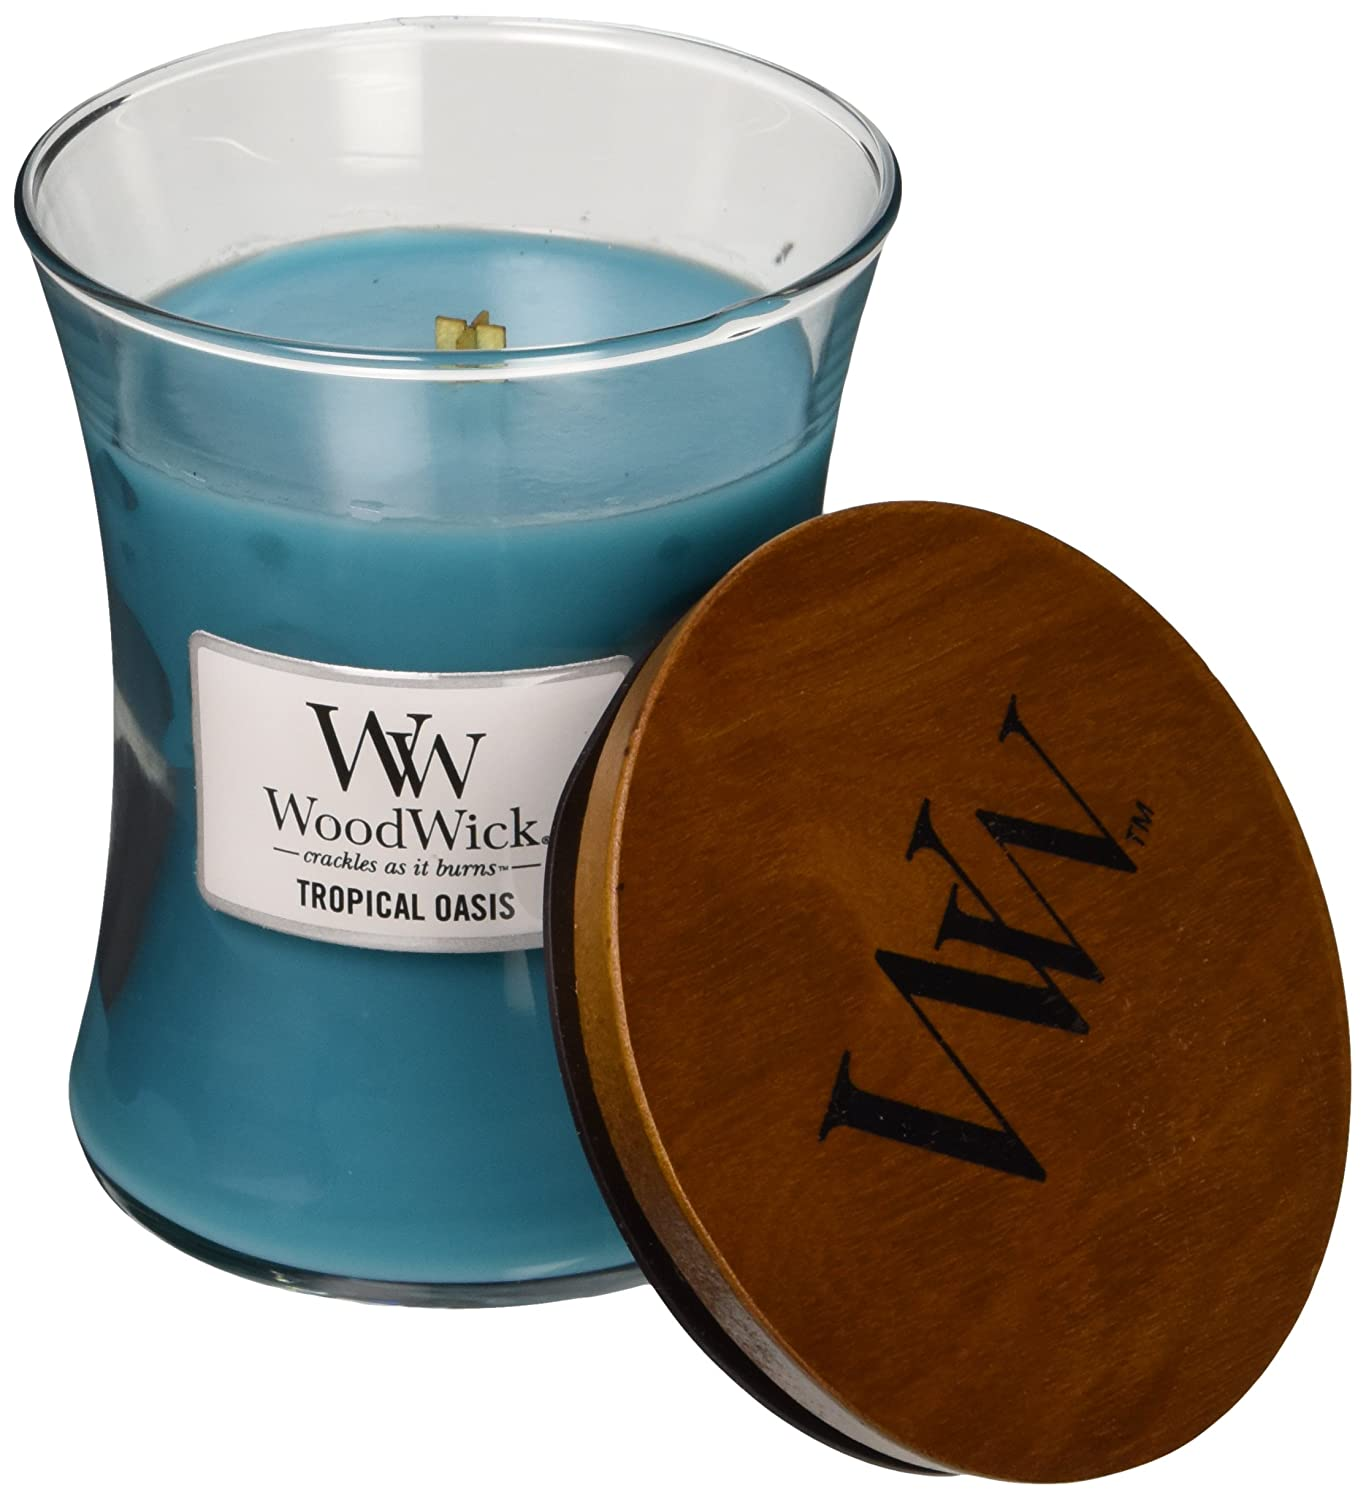 WoodWick Tropical Oasis Candle, Medium VIRGINIA GIFT BRANDS 92496